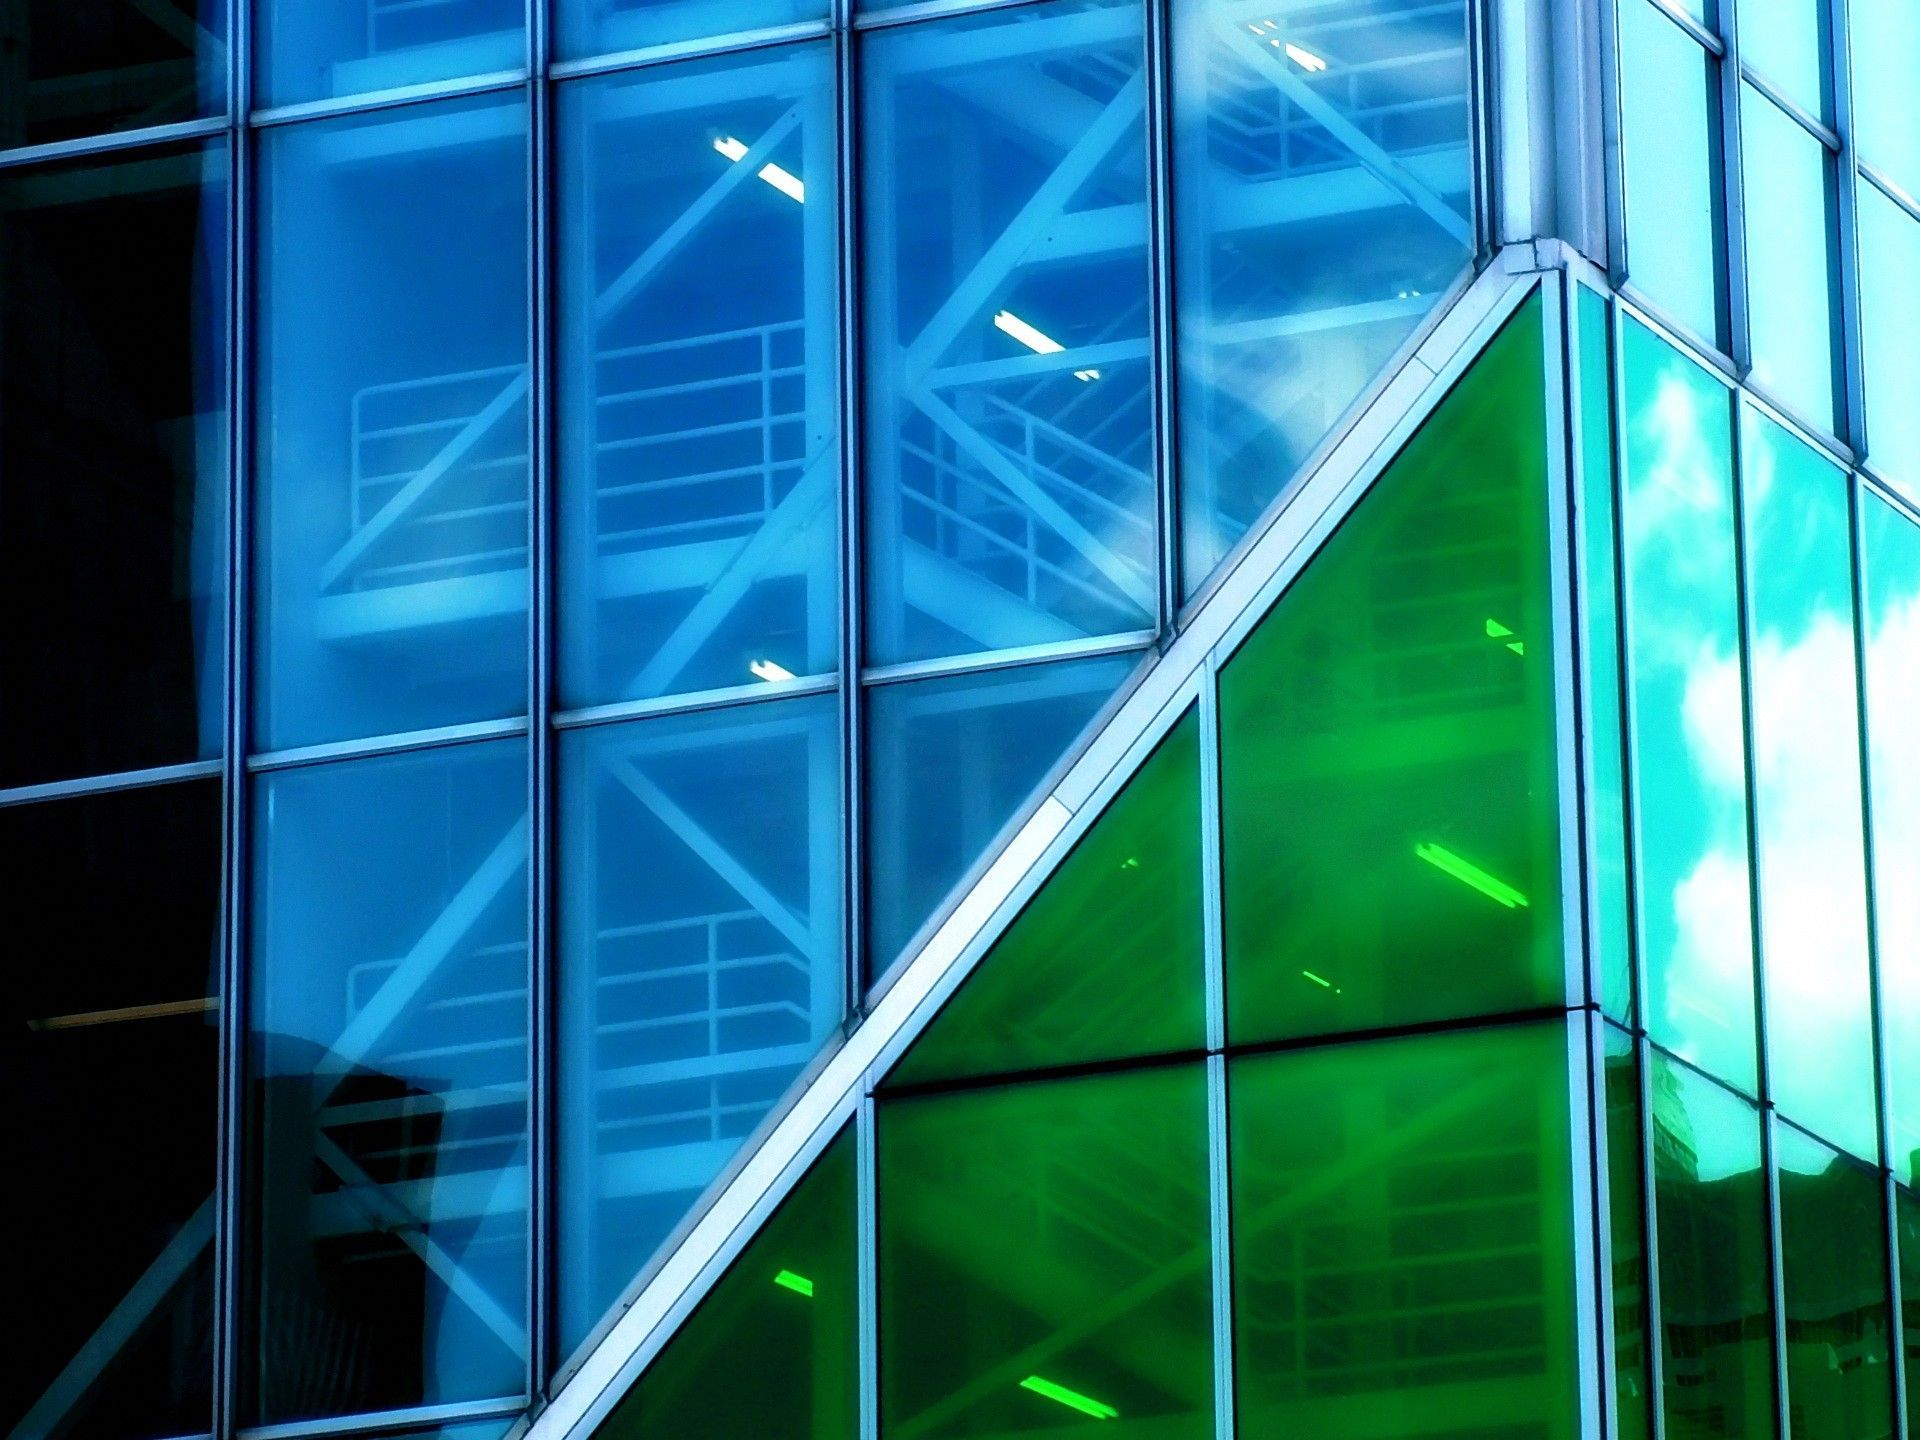 glass, blue, Green, building, wallpapers , Pc backgrounds, free photos - HD wallpaper desktop backgrounds